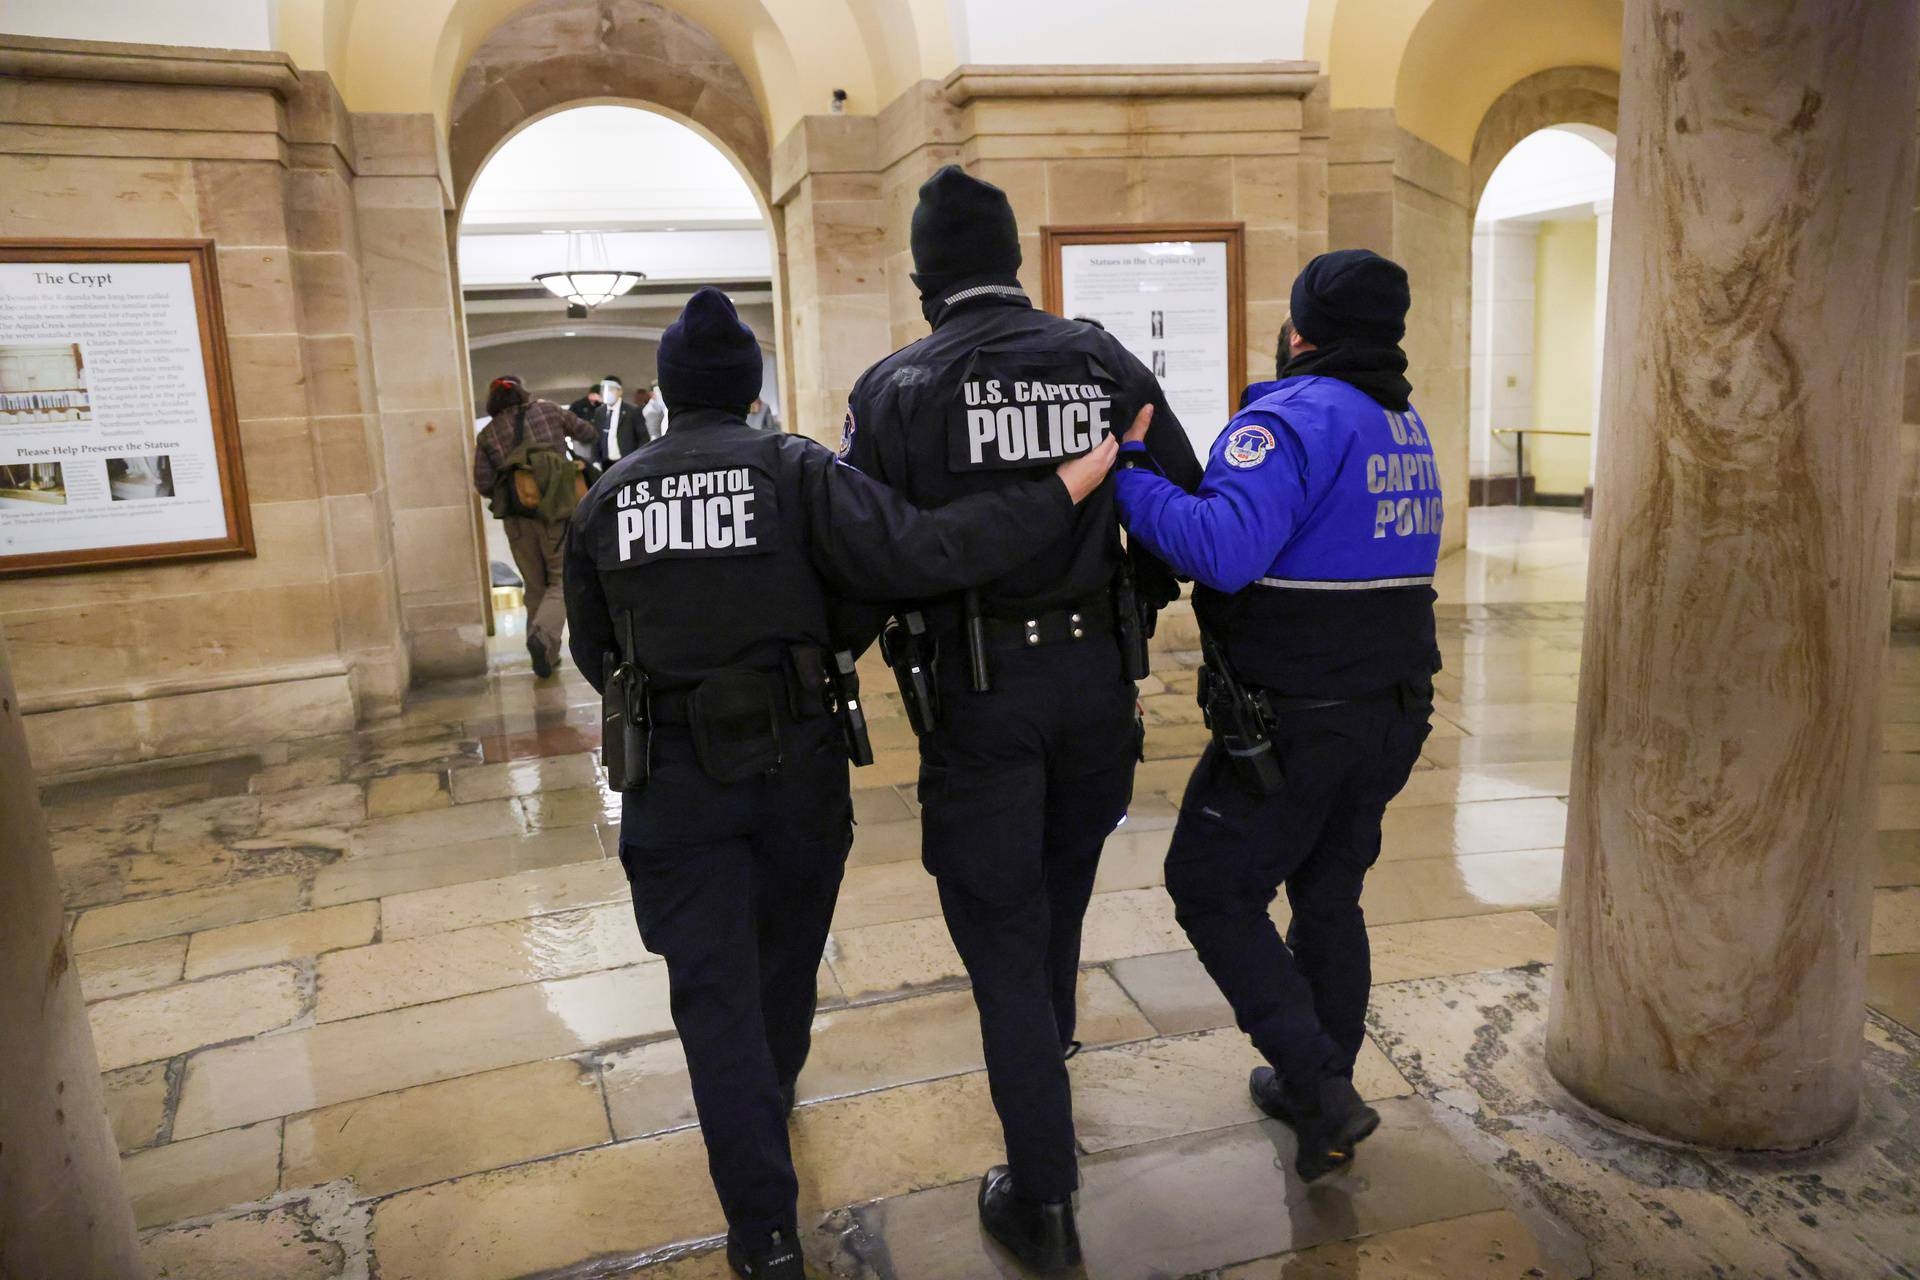 Members of the U.S. Capitol Police walk inside the Capitol as supporters of U.S. President Donald Trump protest outside, in Washington